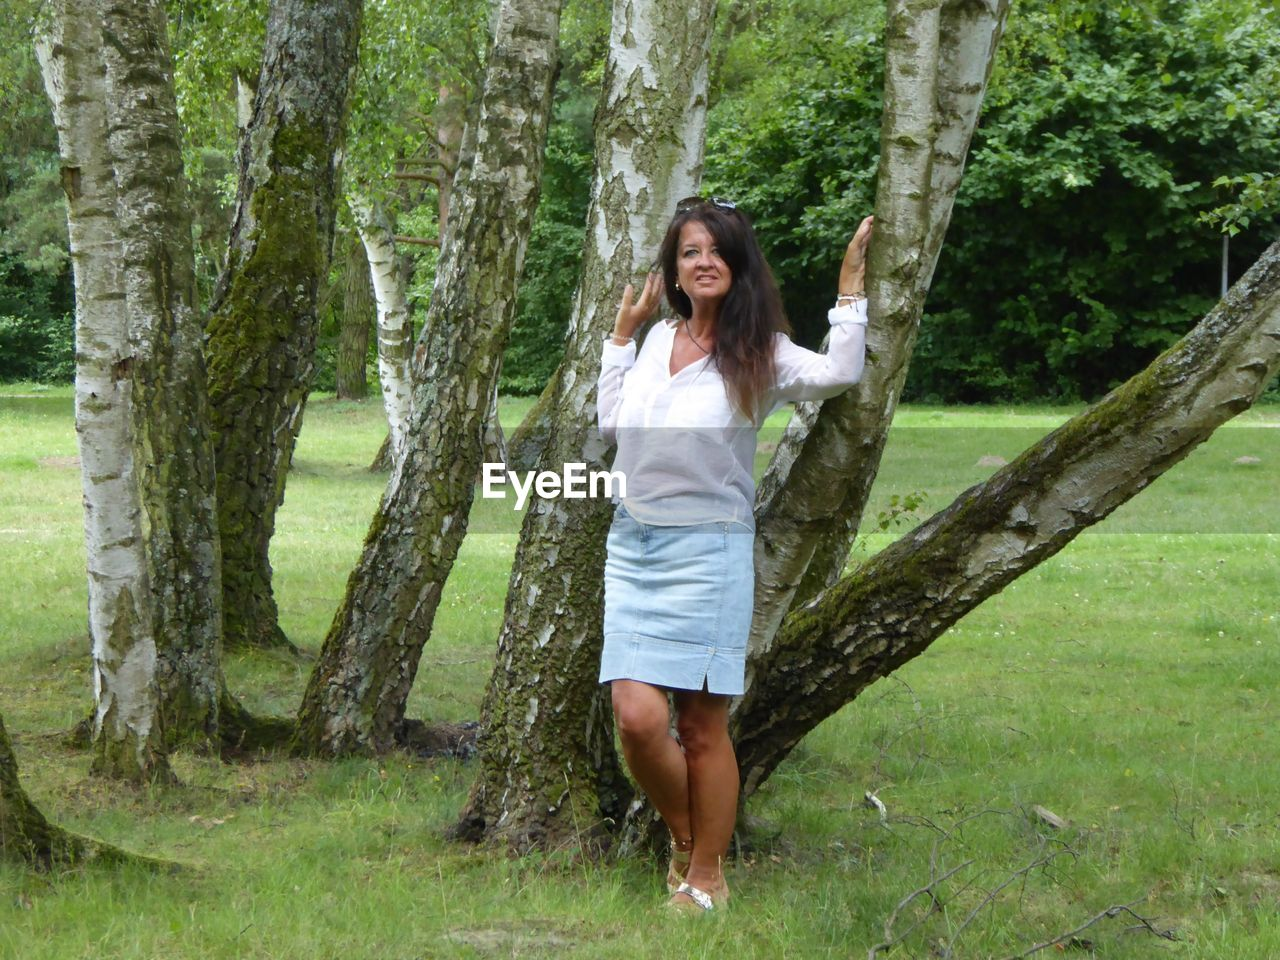 long hair, tree, one person, beautiful woman, young adult, casual clothing, full length, front view, smiling, tree trunk, brown hair, nature, barefoot, happiness, one woman only, adults only, only women, young women, standing, beauty, day, relaxation, portrait, adult, outdoors, looking at camera, leisure activity, real people, cheerful, women, grass, lifestyles, people, one young woman only